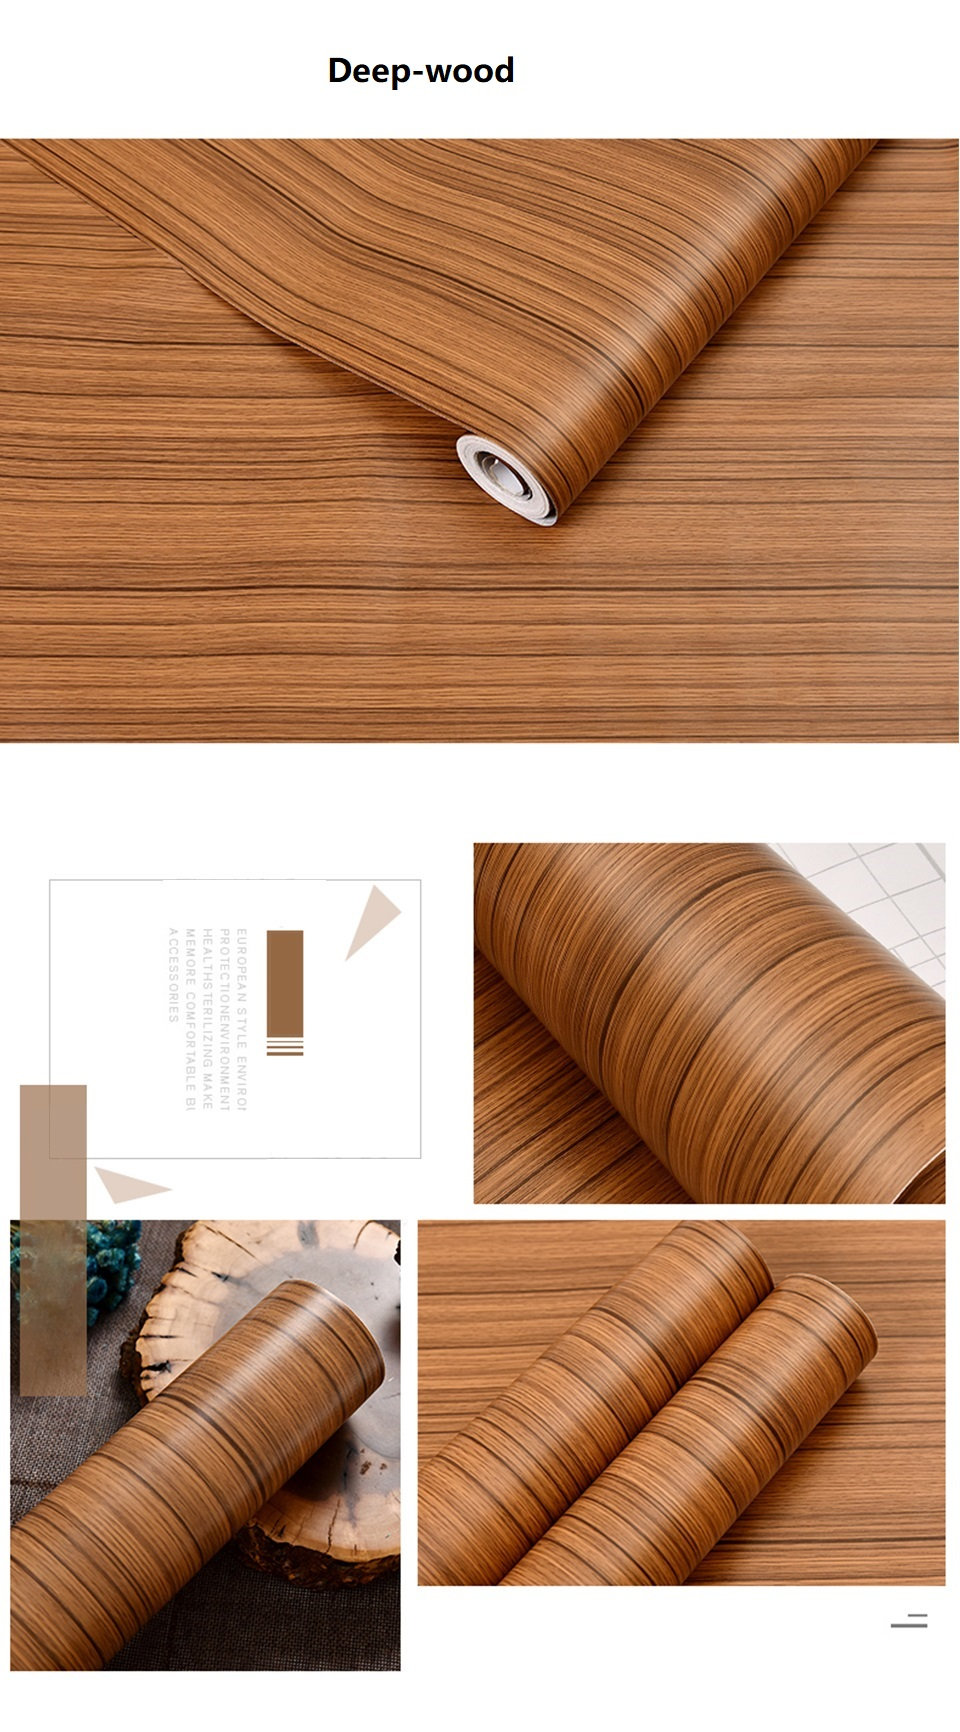 PVC Vinyl Wood Grain Contact Paper for Kitchen Cabinets Table Sticker Waterproof Self adhesive Wallpaper Phone Case Stickers HTB1LG4Zh9CWBuNjy0Fhq6z6EVXaw